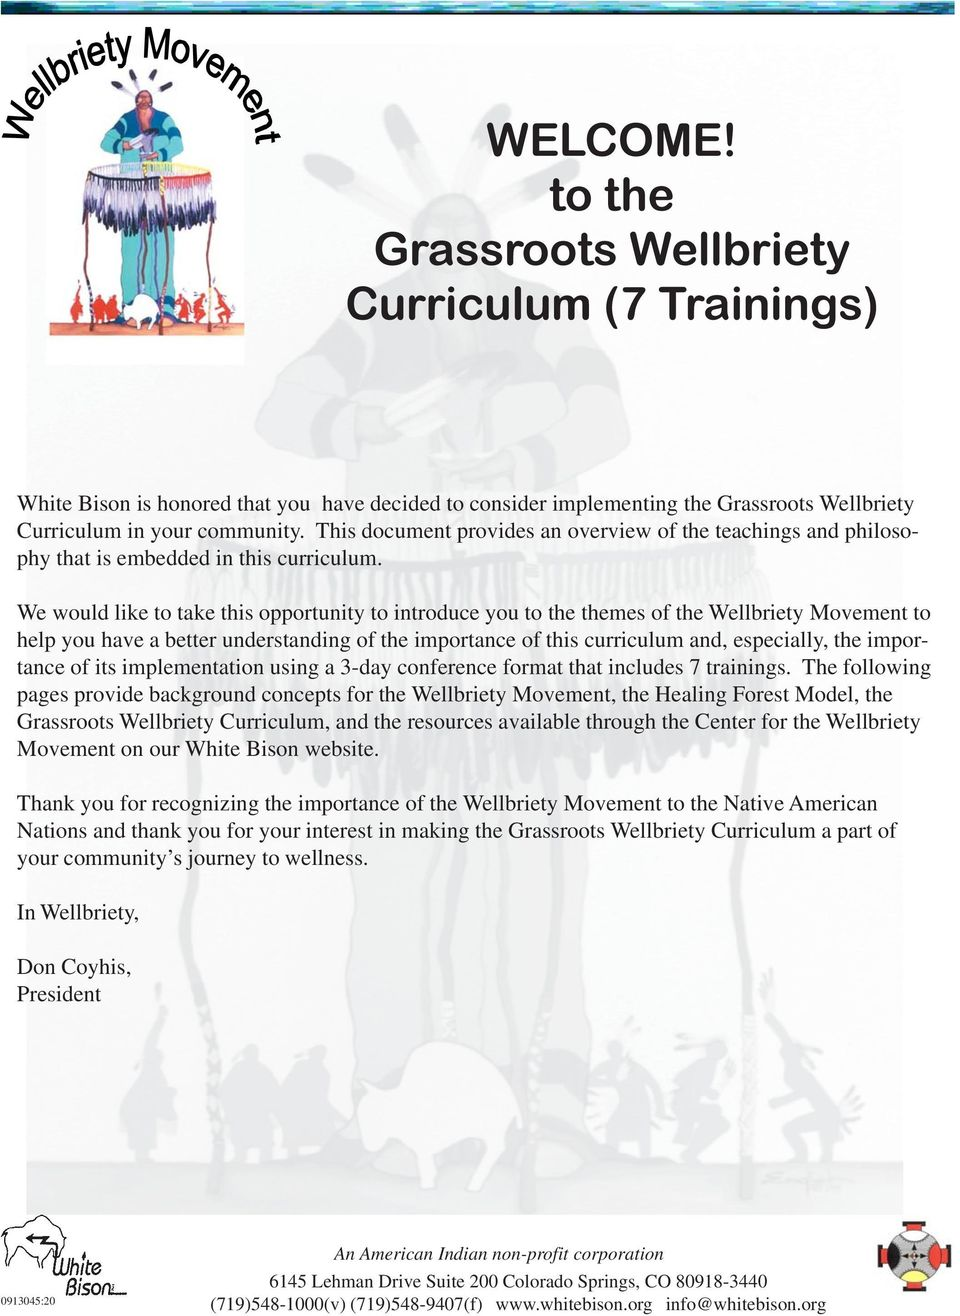 WELCOME! to the Grassroots Wellbriety Curriculum (7